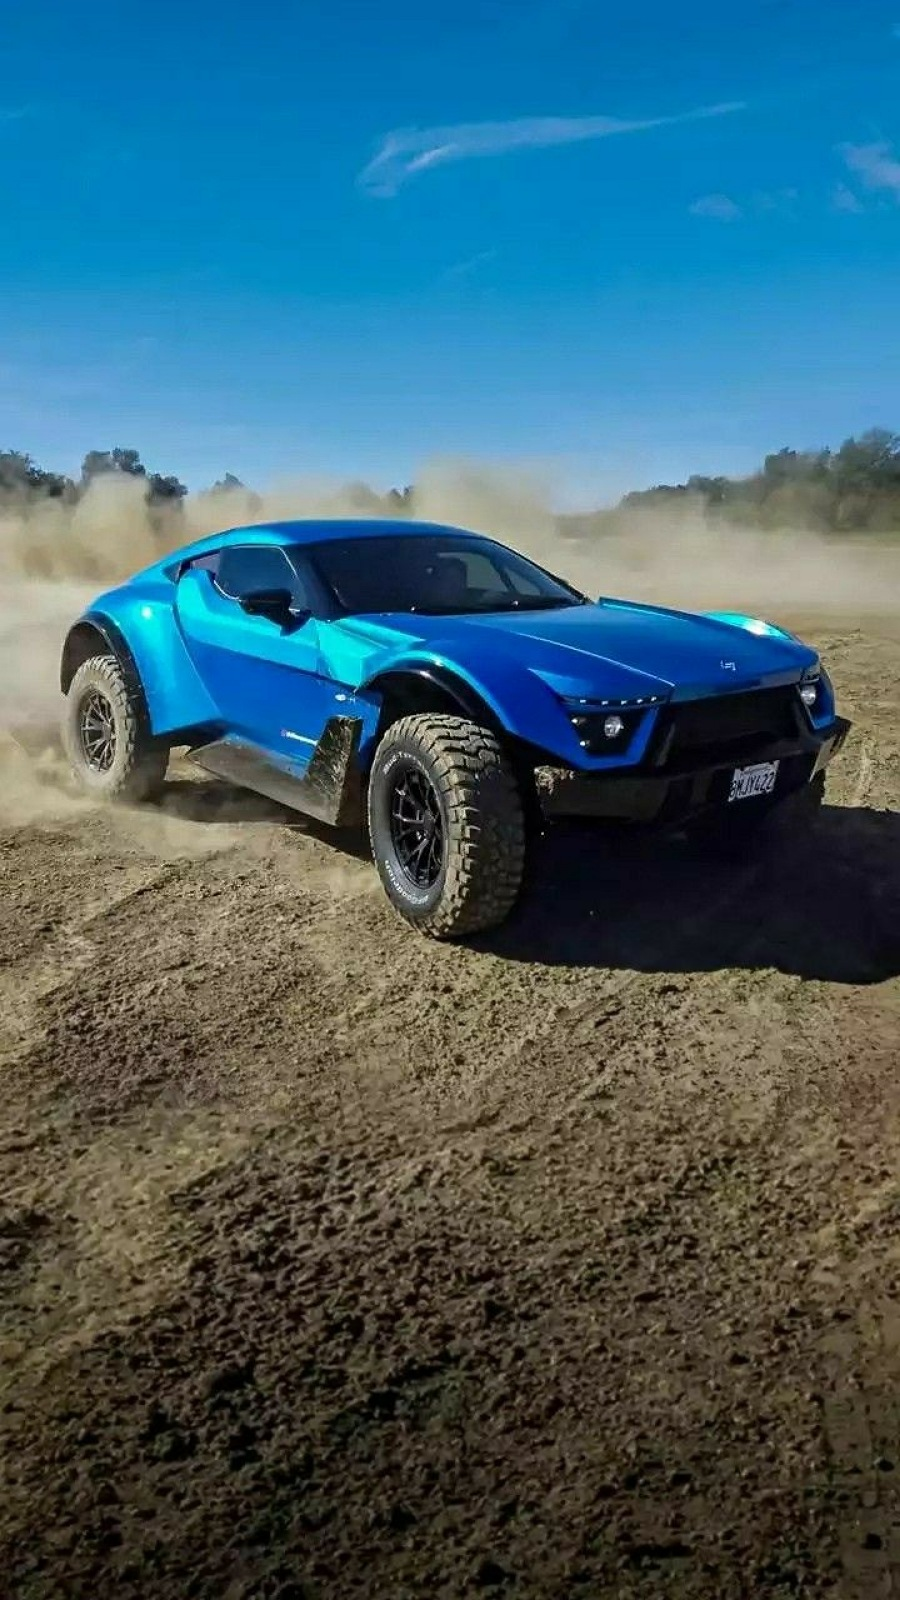 4×4 Cars HD Wallpapers For Phone – Best Wallpapers